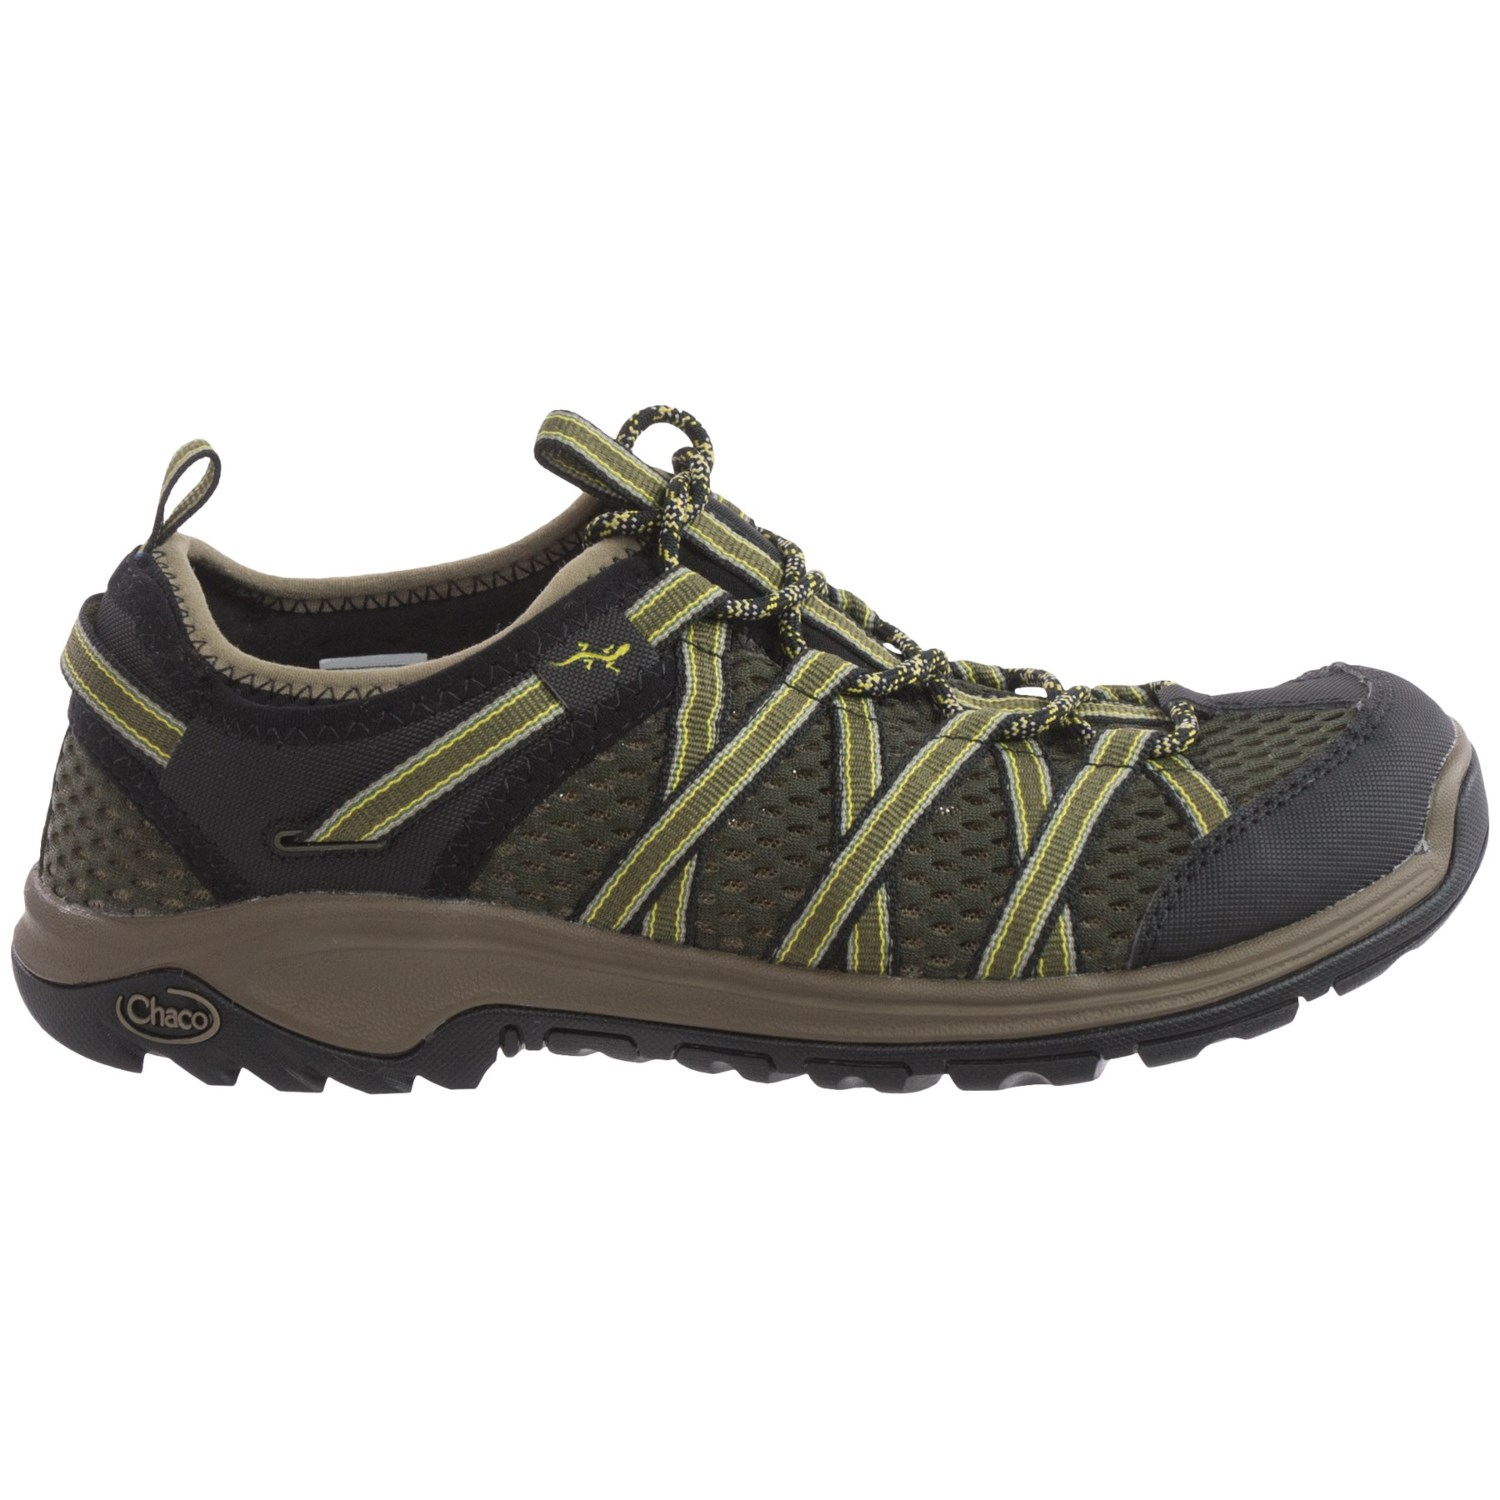 5ada274720c4 Chaco OutCross Evo 2 Water Shoes (For Men) - Save 45%